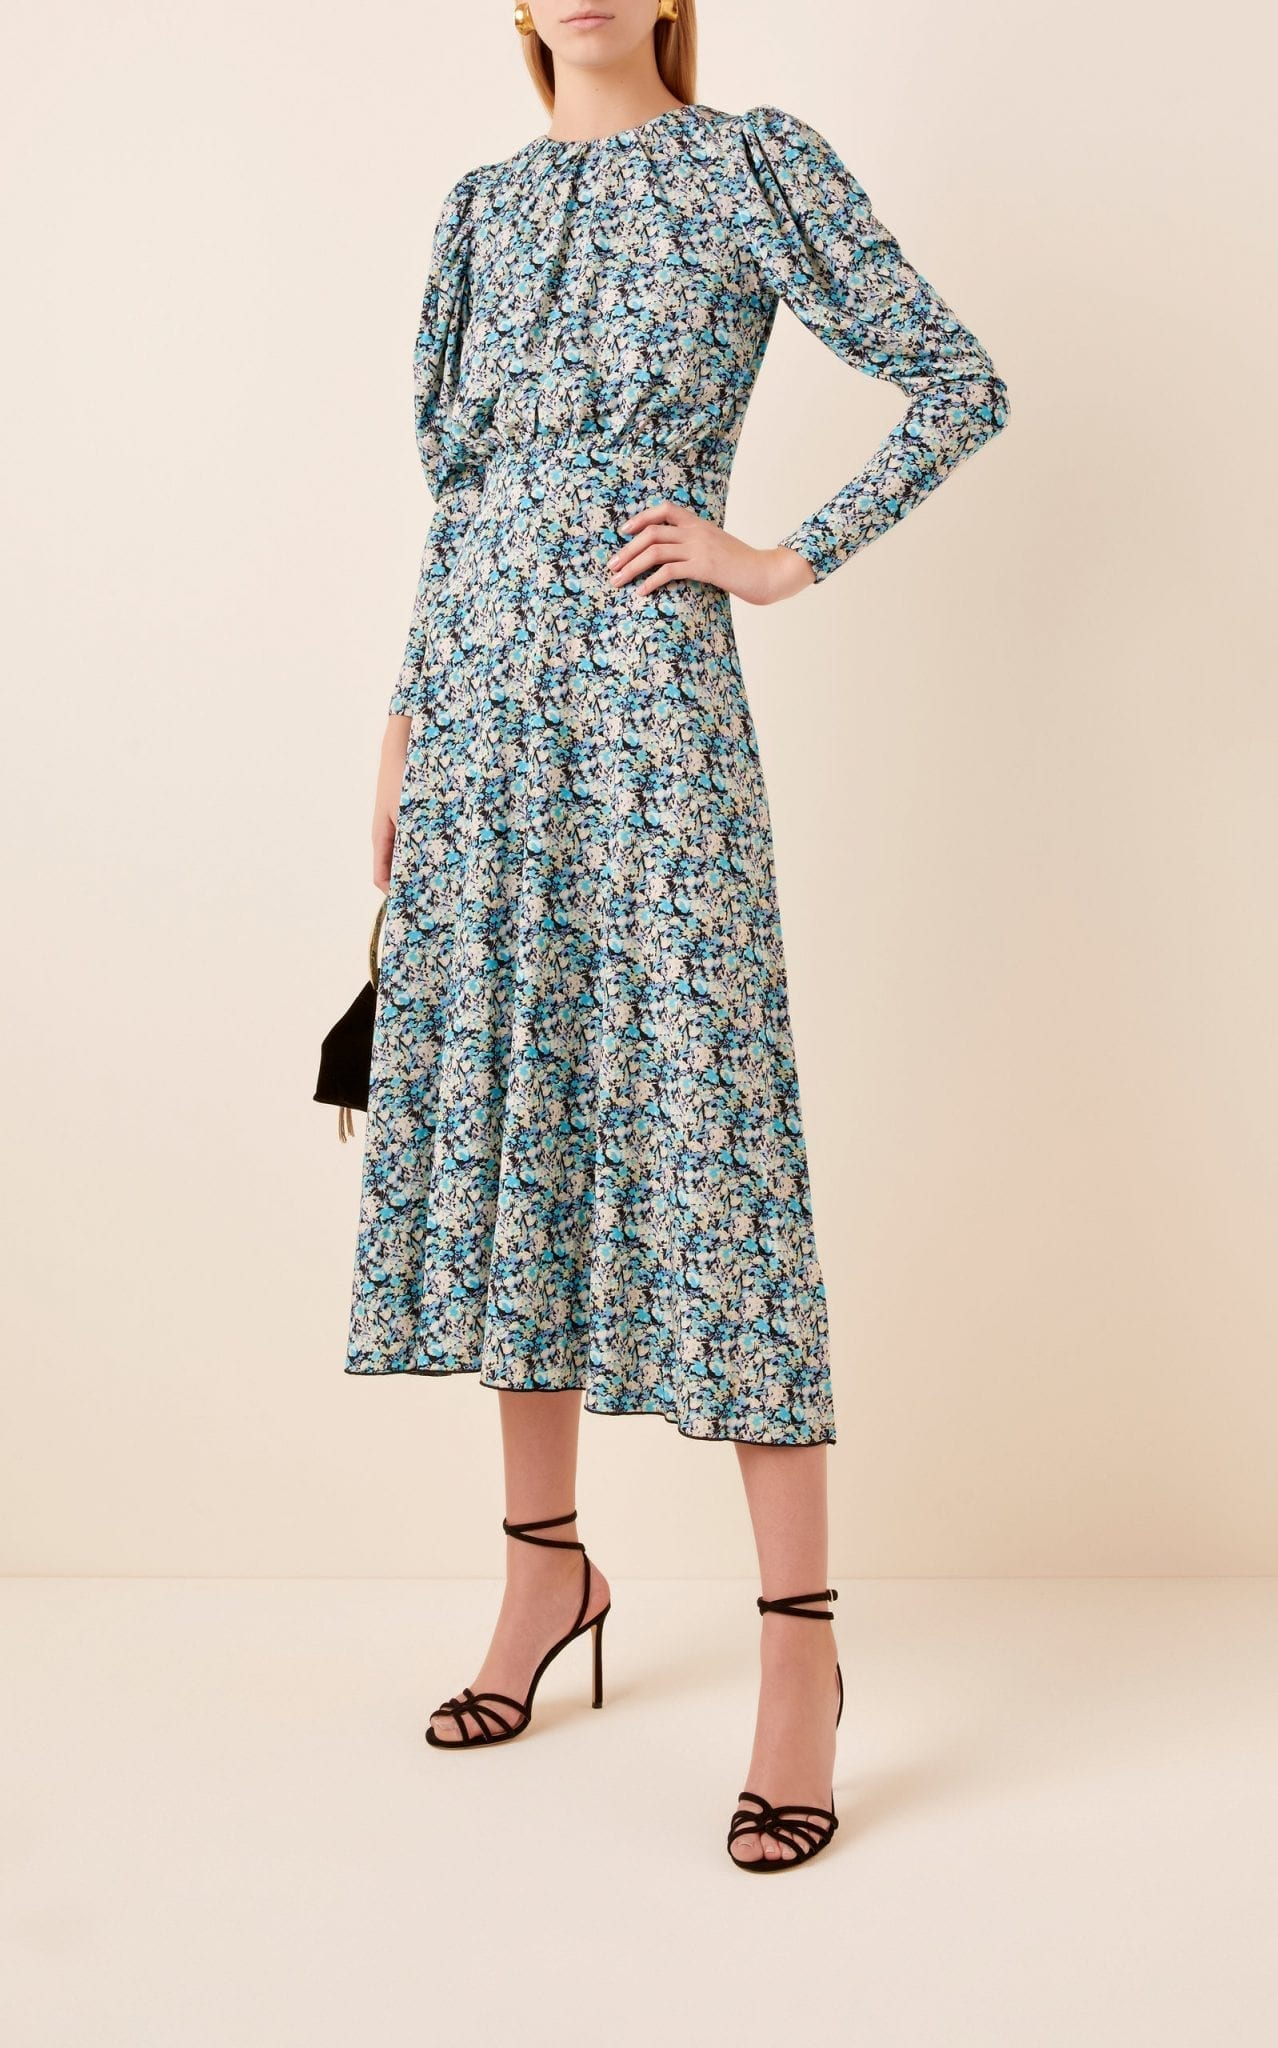 ROTATE Number 57 ReRunner Crepe Midi Dress